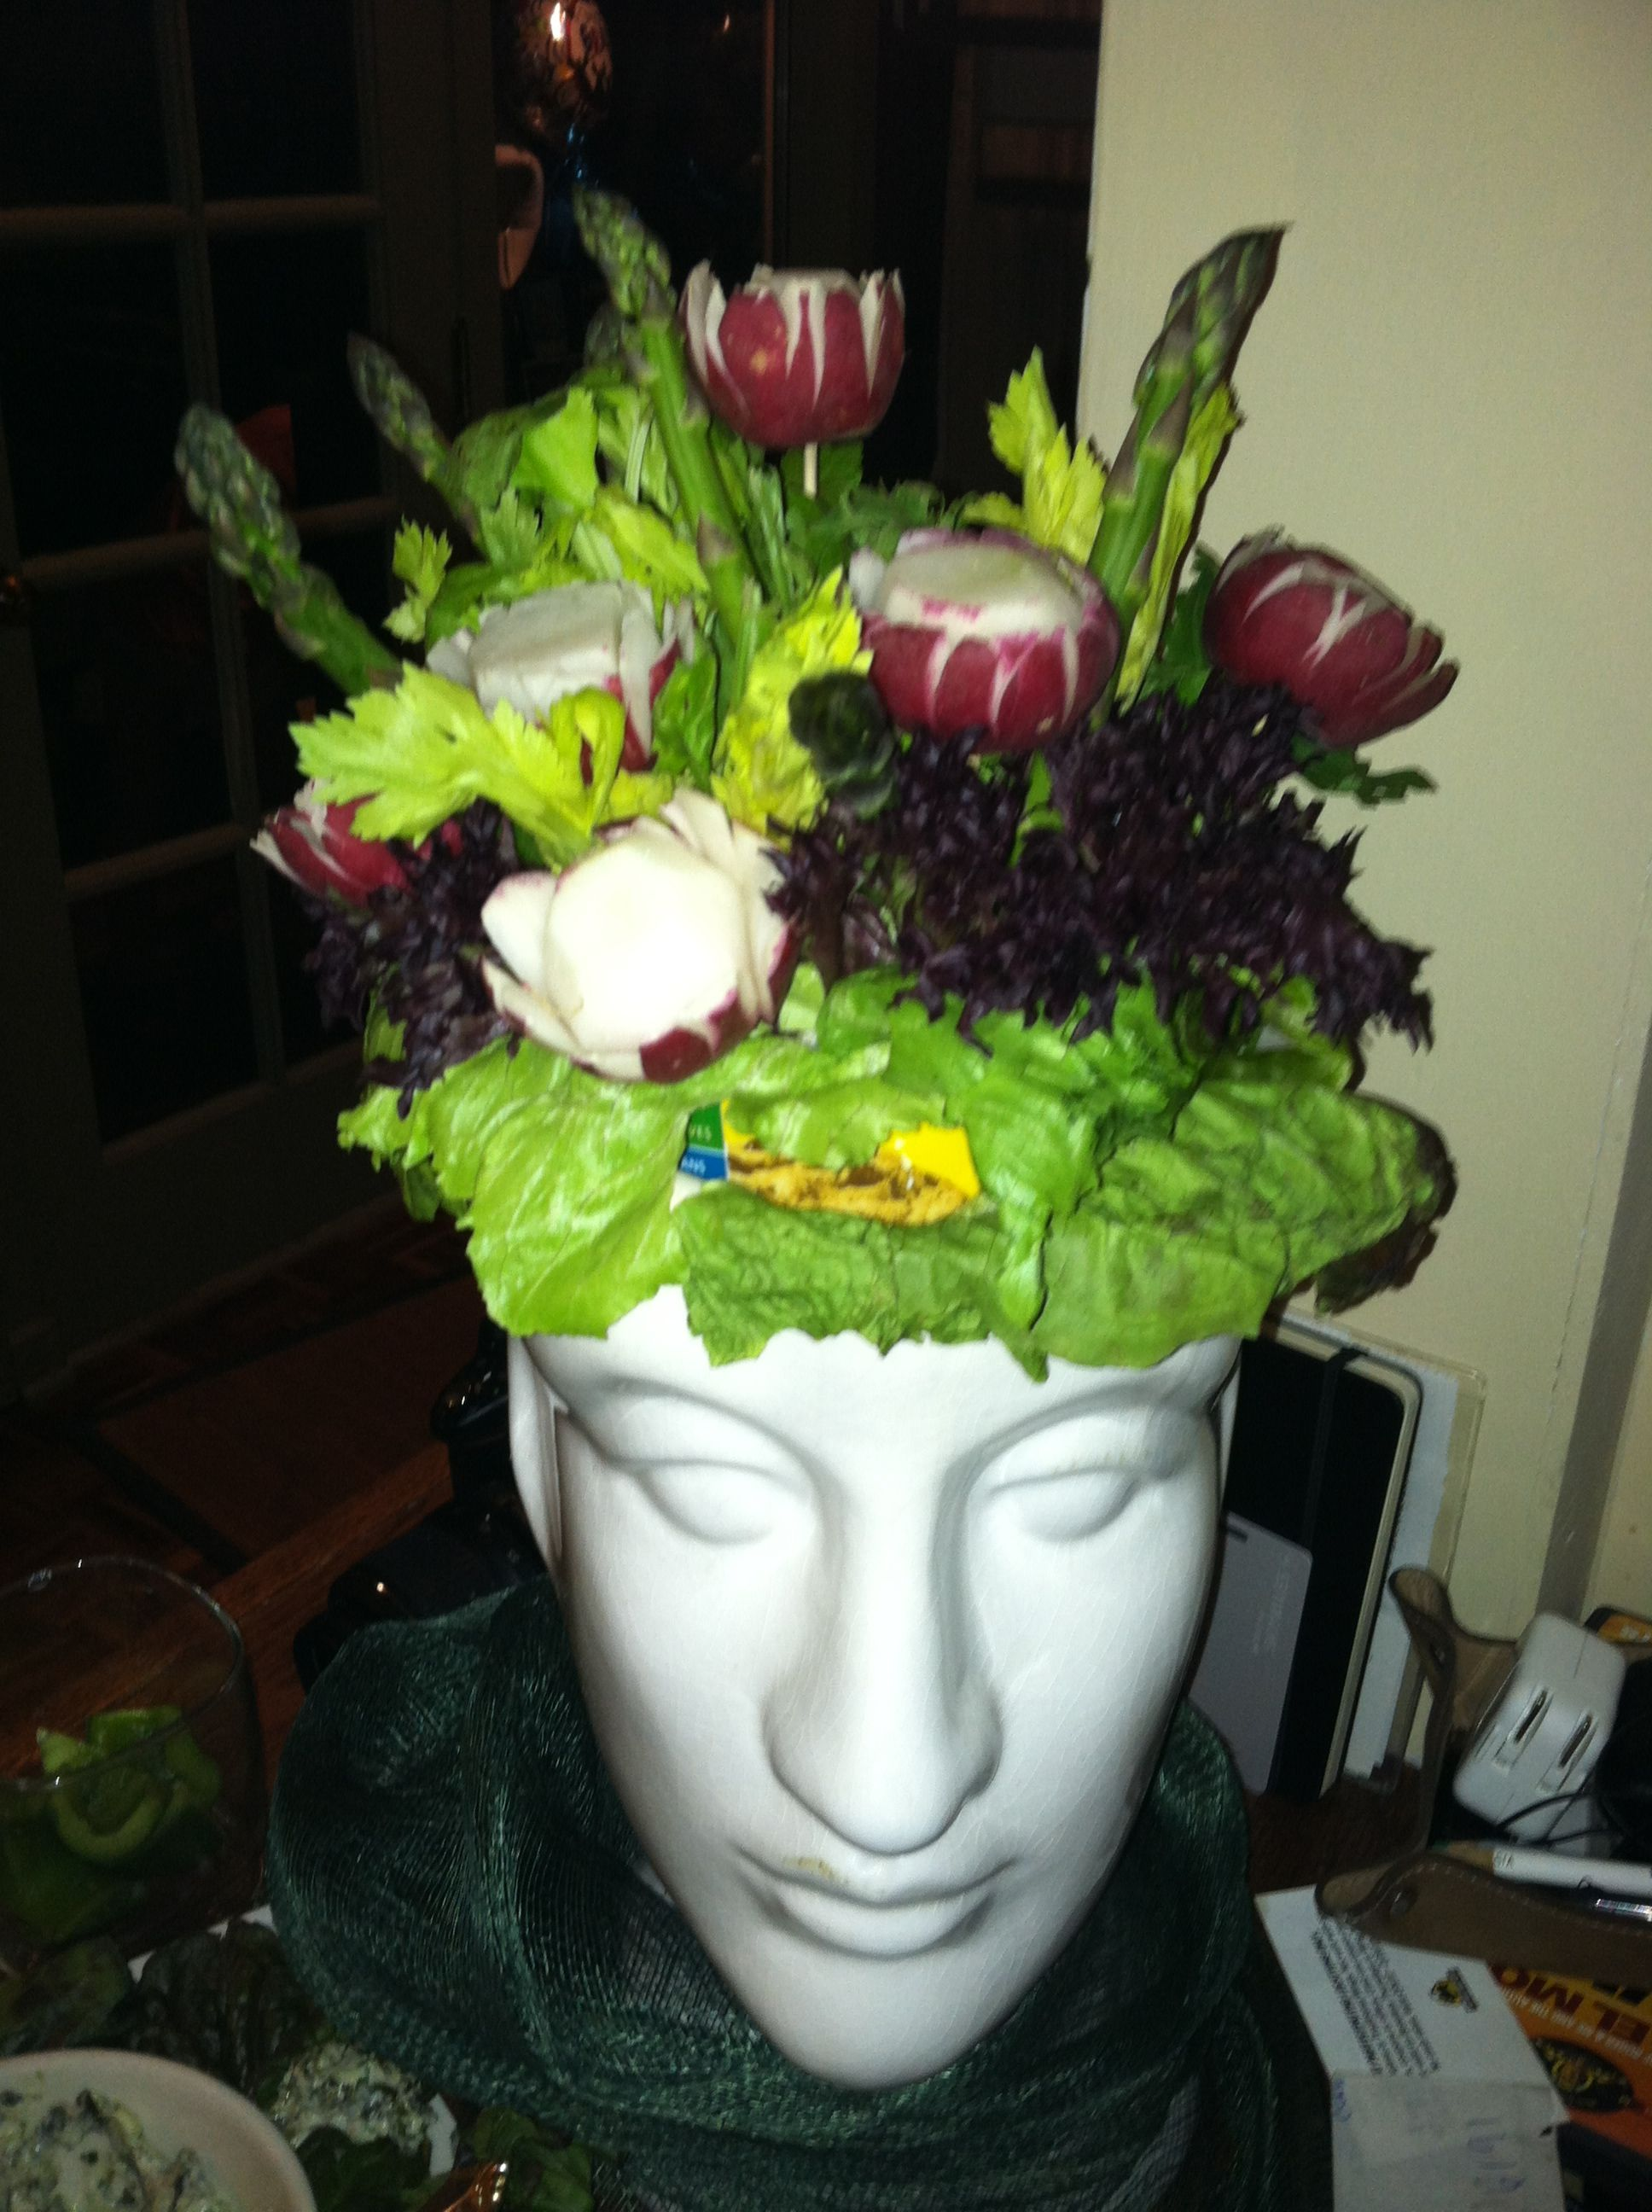 Use a flower pot to make an edible veggie arrangement